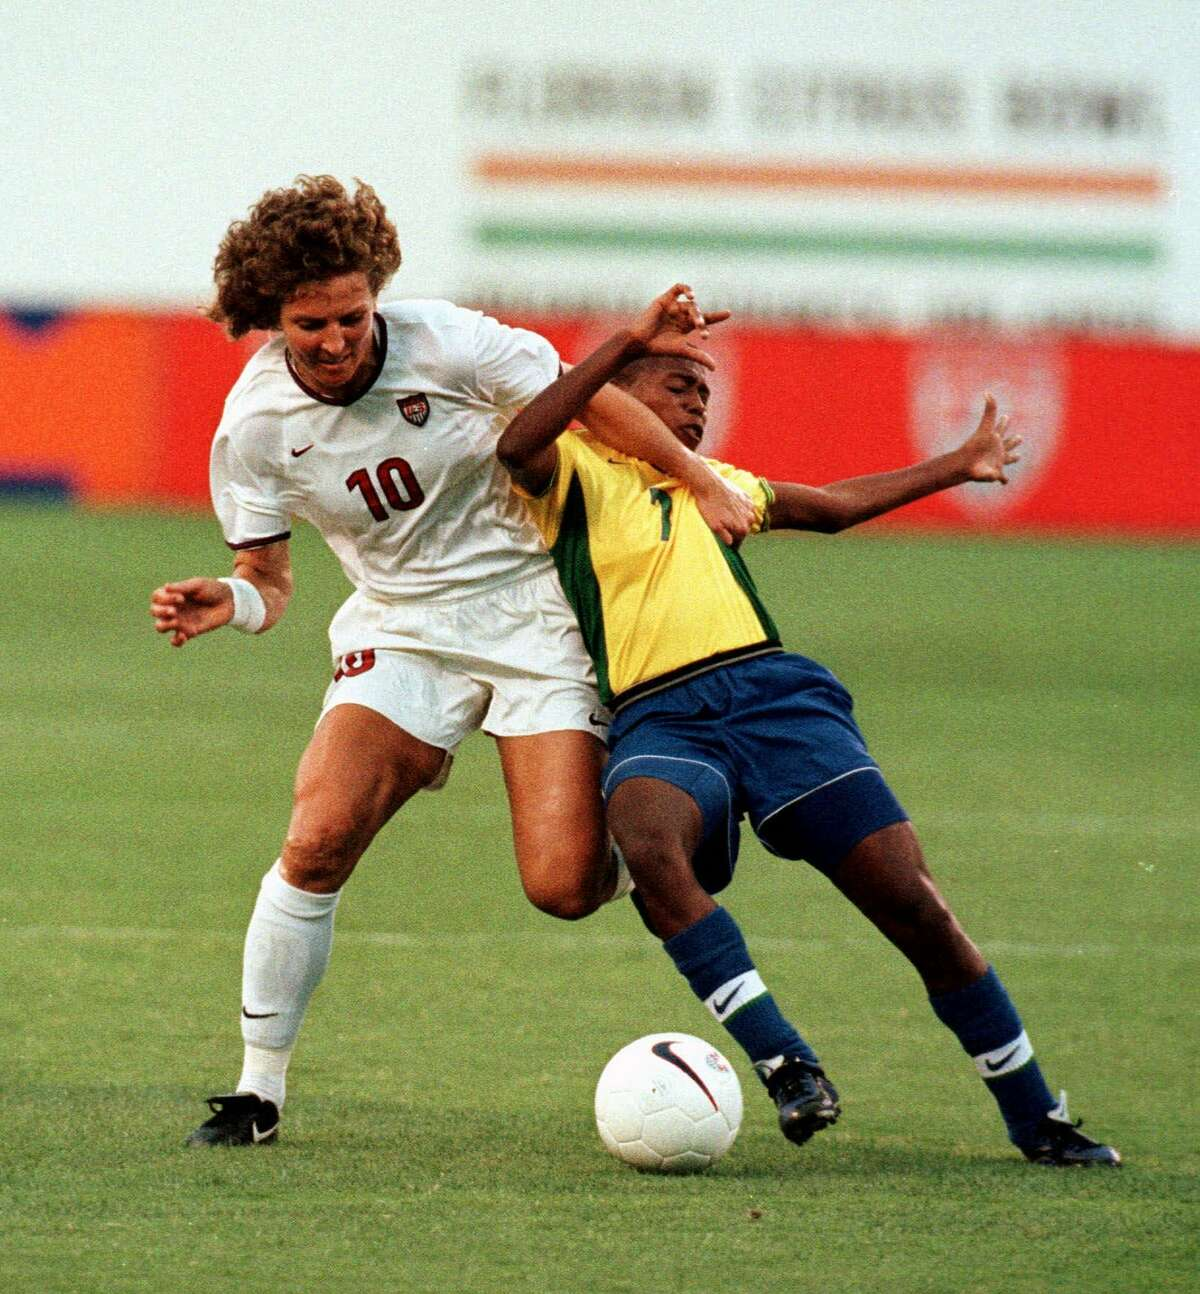 FILE -- United States midfielder Michelle Akers,(10), battles for the ball as Brazil's Maycon during their friendly match in Orlando, Fla. Saturday, May 22, 1999. The United States won 3-0. Akers, the grande dame of American soccer, has low blood pressure and chronic fatigue syndrome. And she's not sure how much she can play in the Women's World Cup.